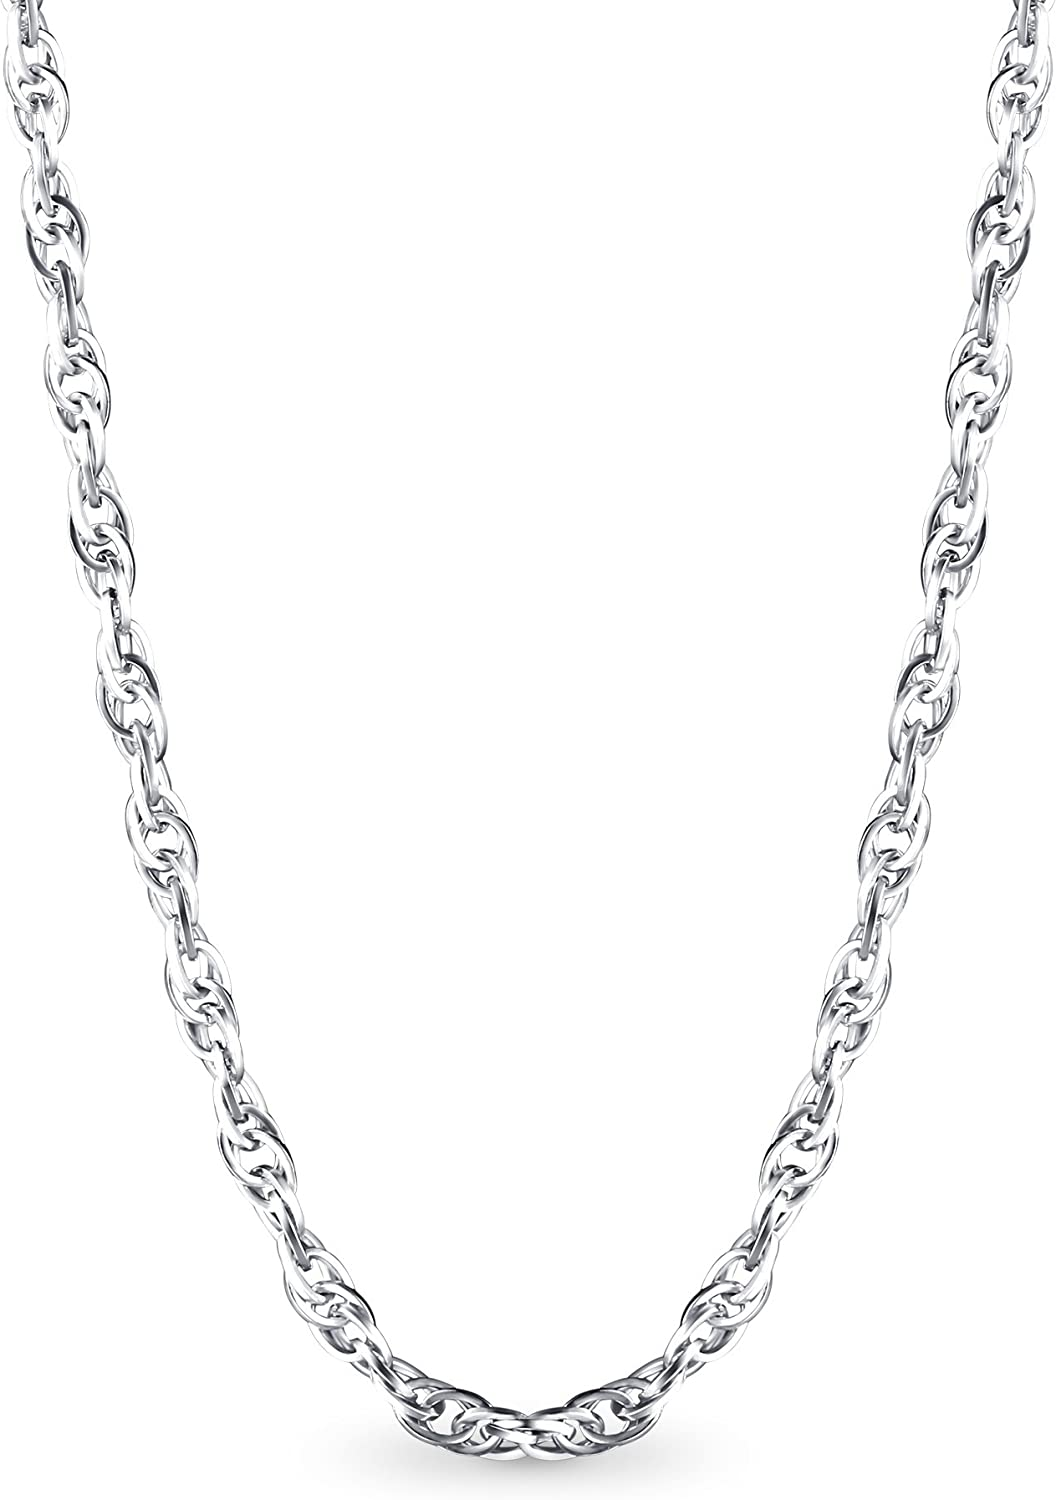 """women/'s ROPE CHAIN NECKLACE 16/""""18/"""" 20/"""" 22/"""" 24/"""" 1.5MM 925 STERLING SILVER men/'s"""